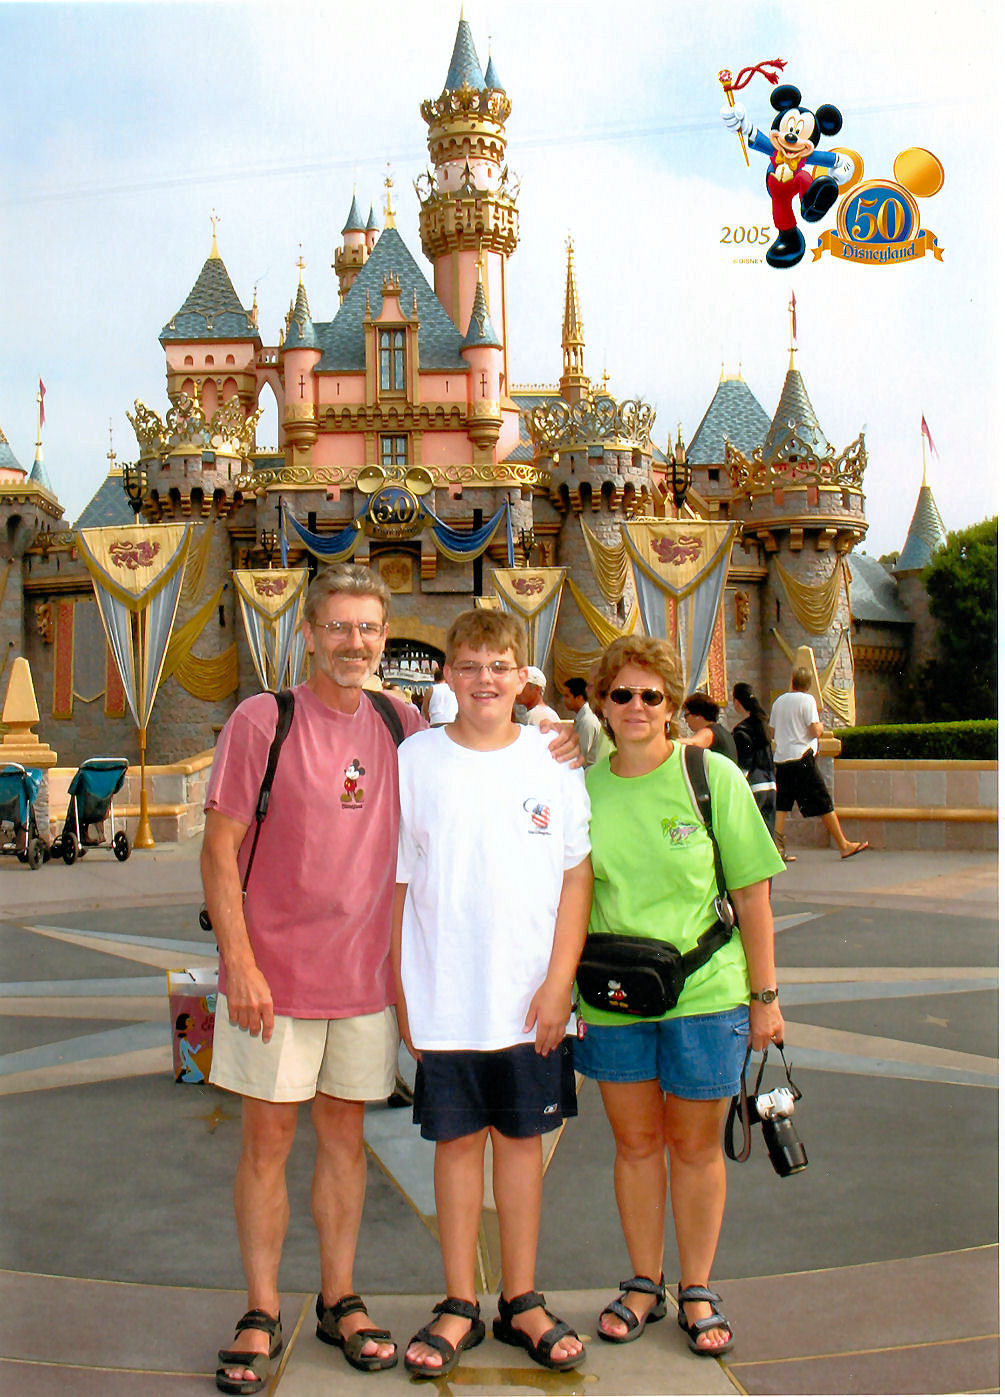 My parents and I in front of Sleeping Beauty Castle at Disneyland during The Happiest Celebration on Earth celebration.